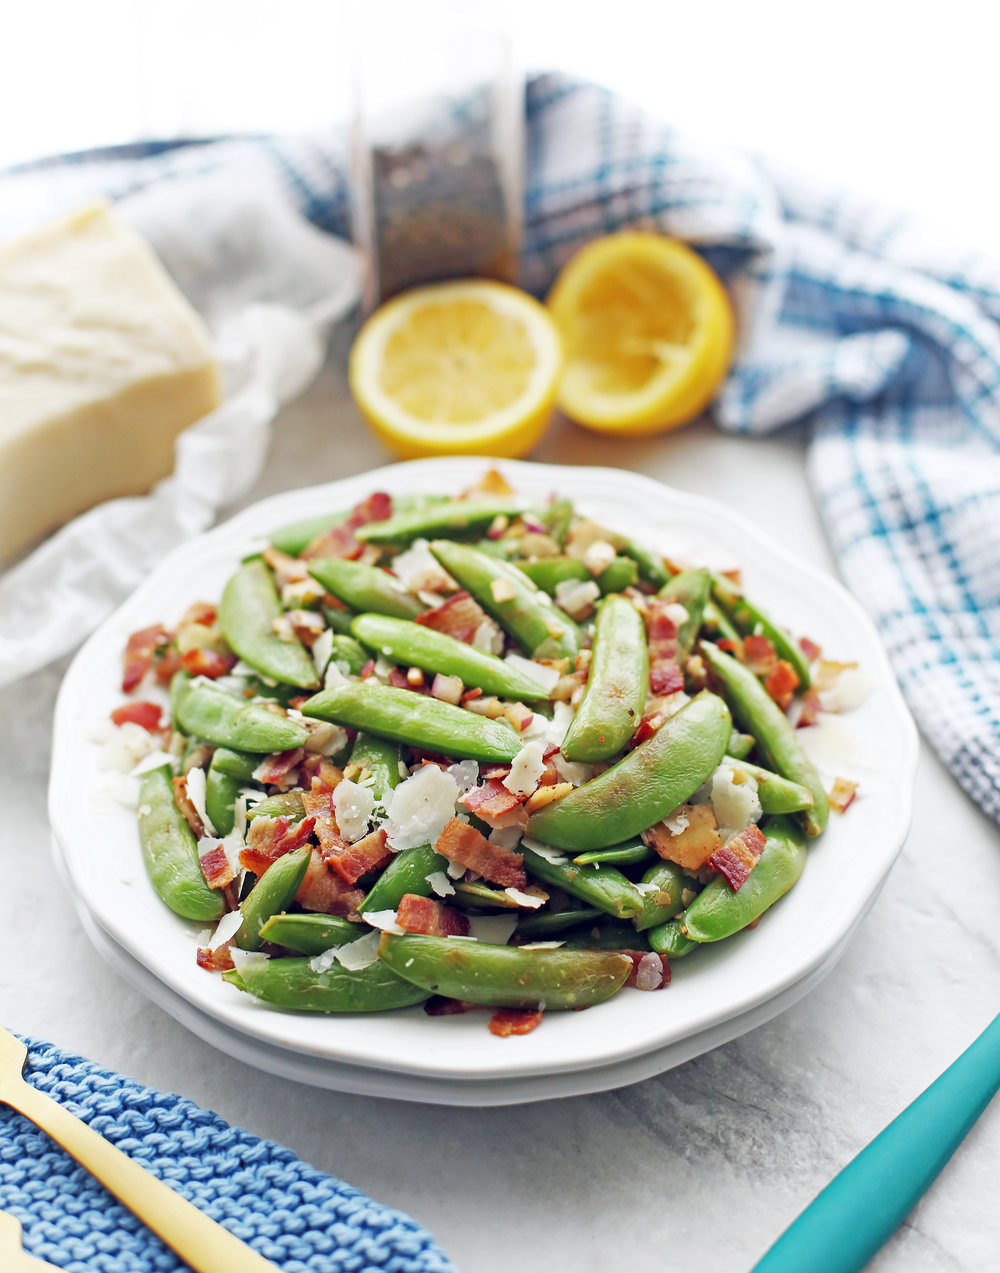 A heaping plate of sugar snap peas with bacon and parmesan.